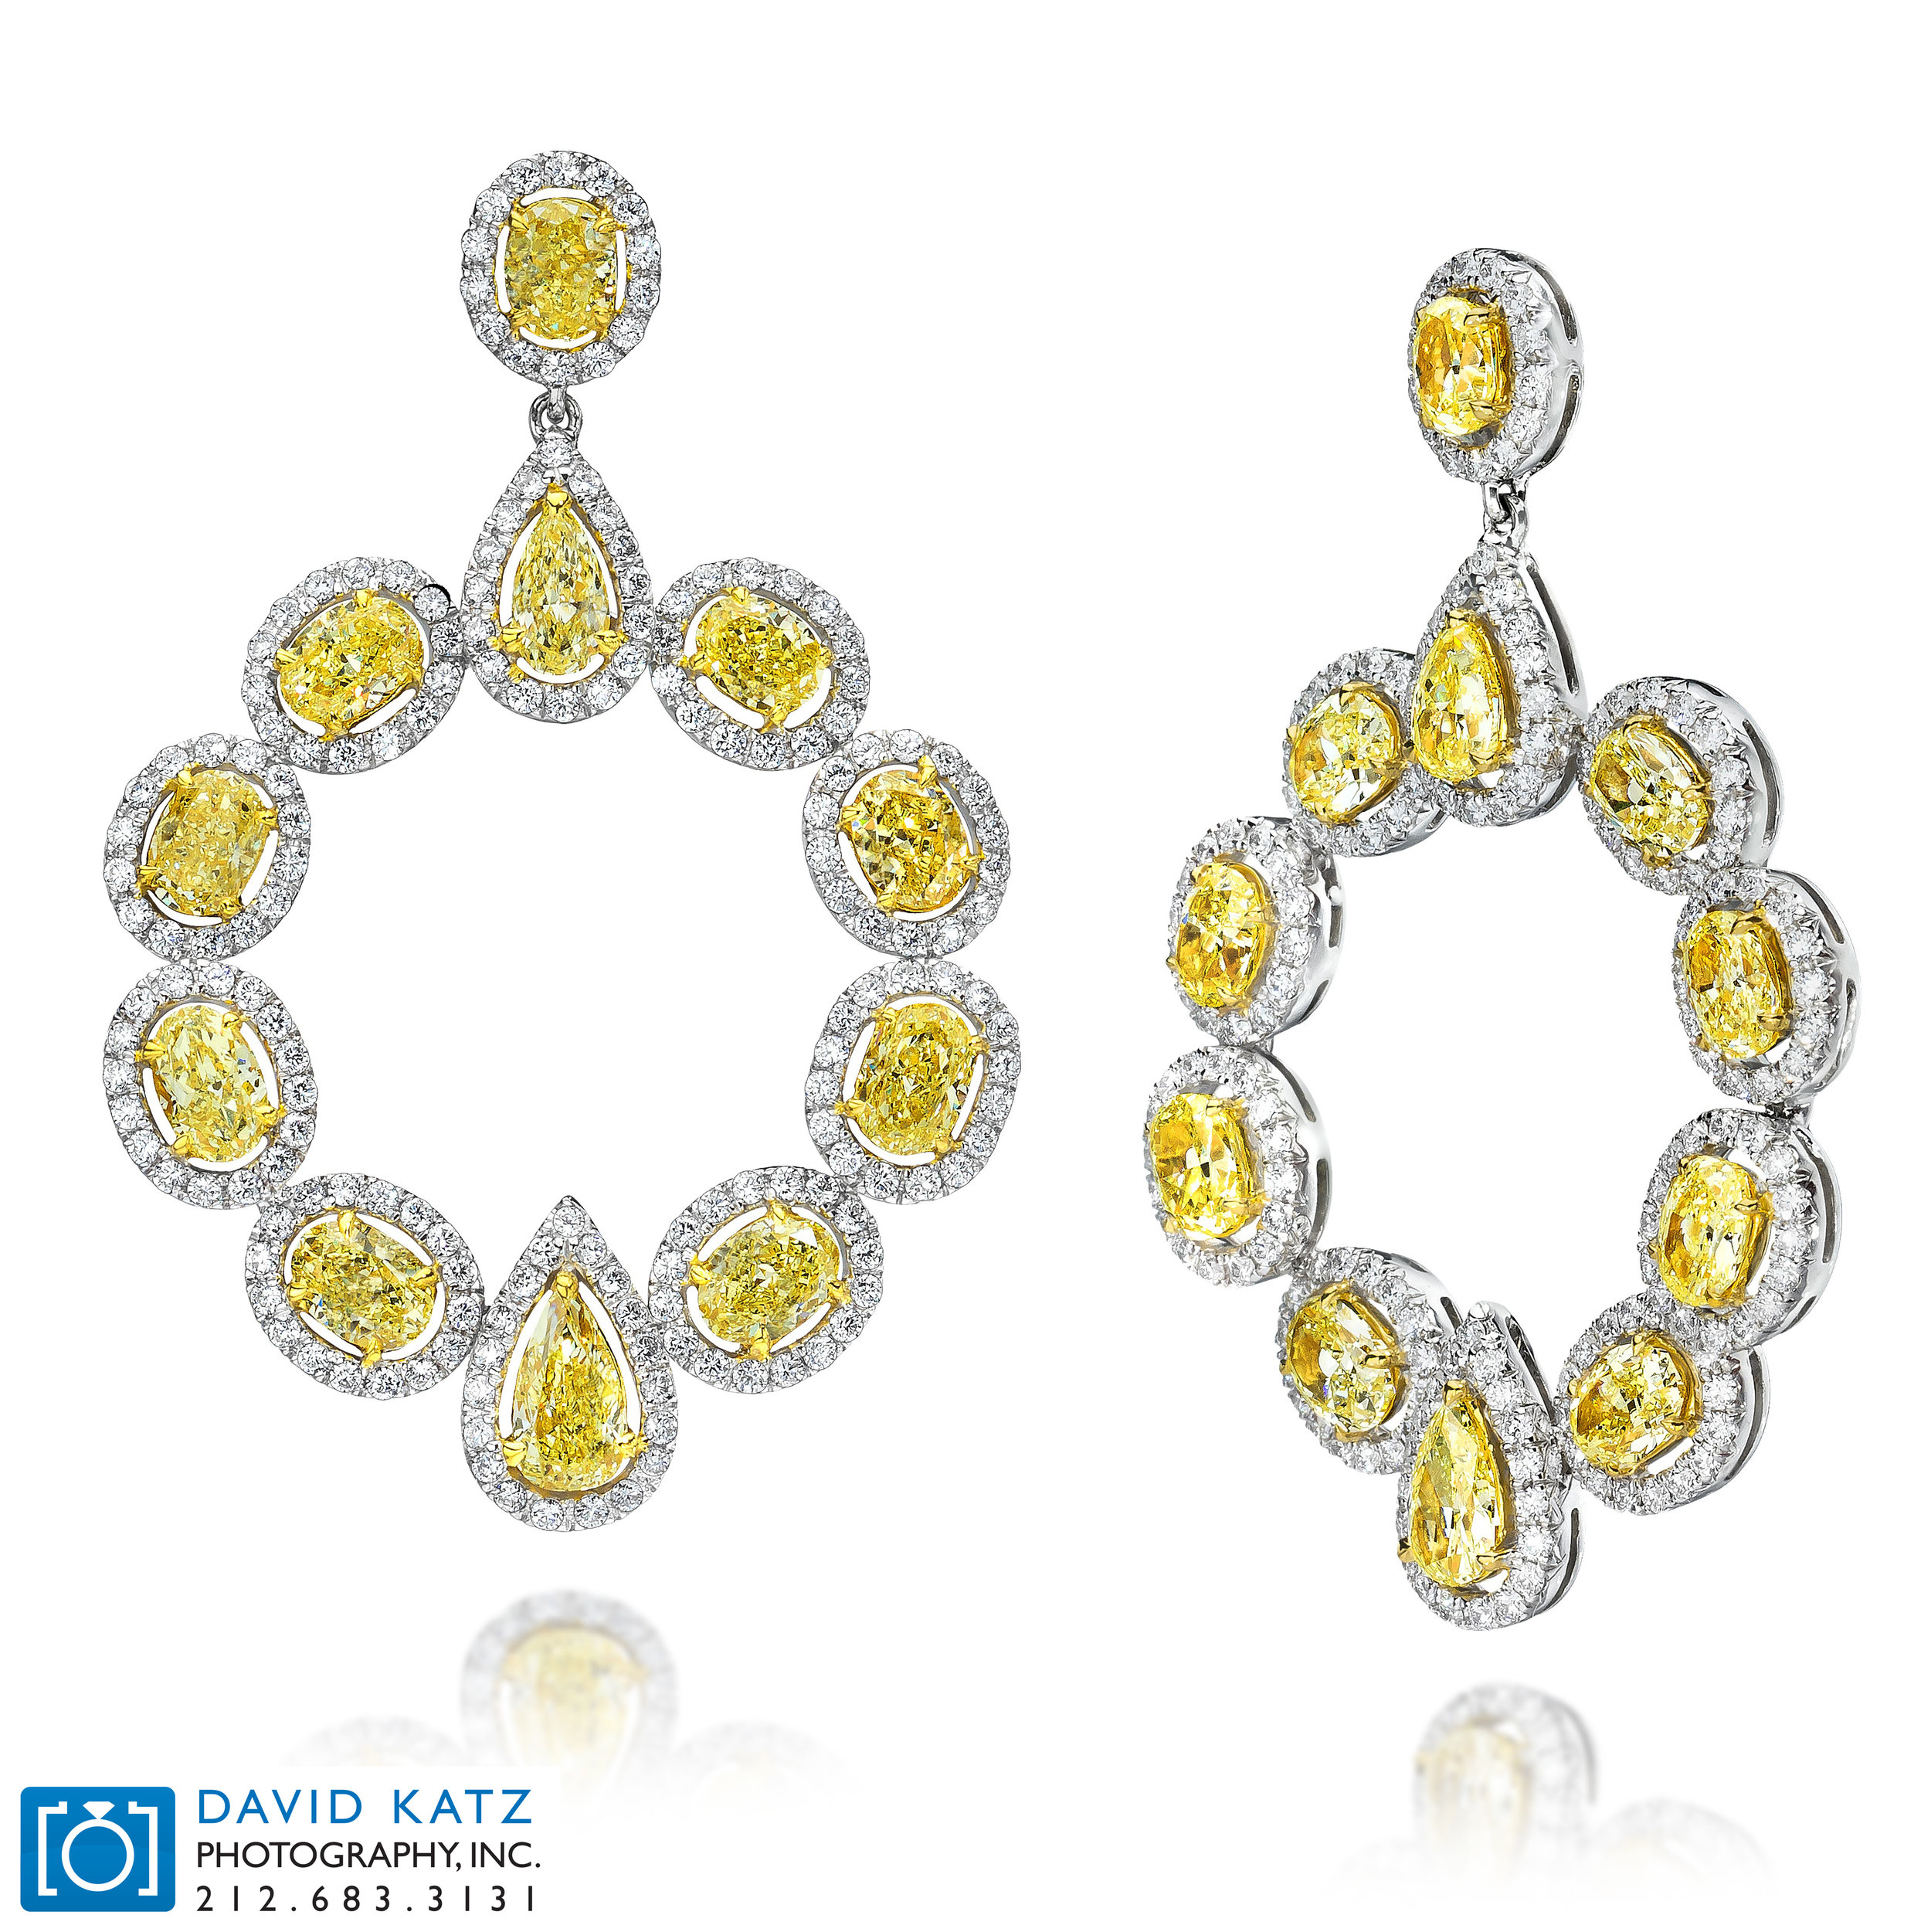 Yellow Diamond Earrings Turned_NEWLOGO.jpg